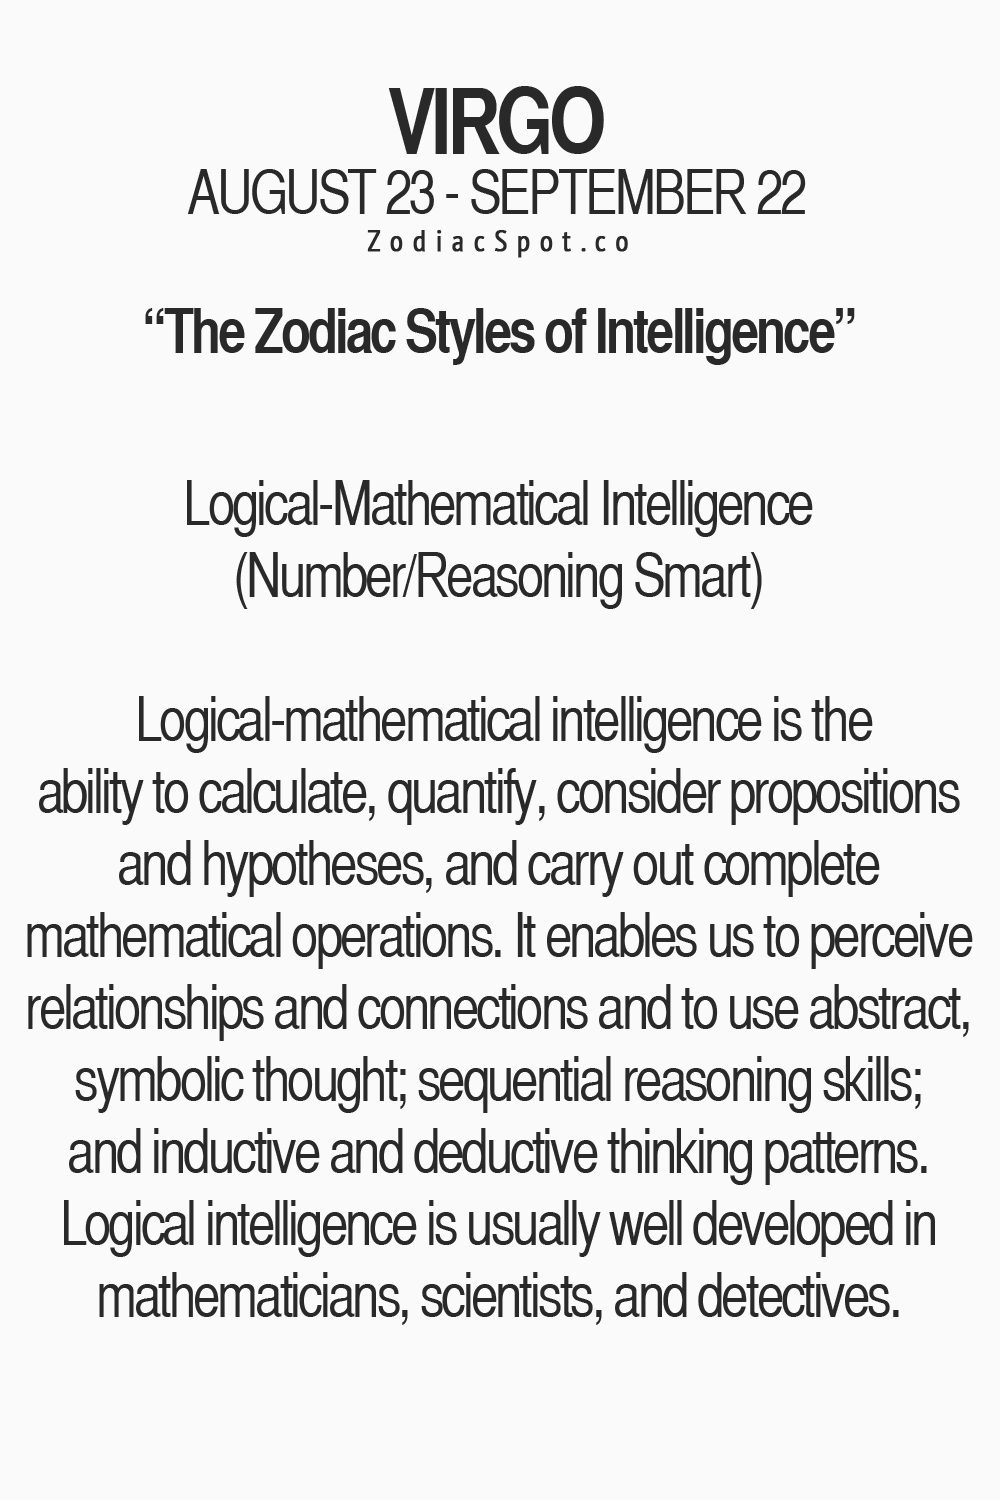 Zodiacspot View Your Style Of Intelligence Here Virgo C U S P